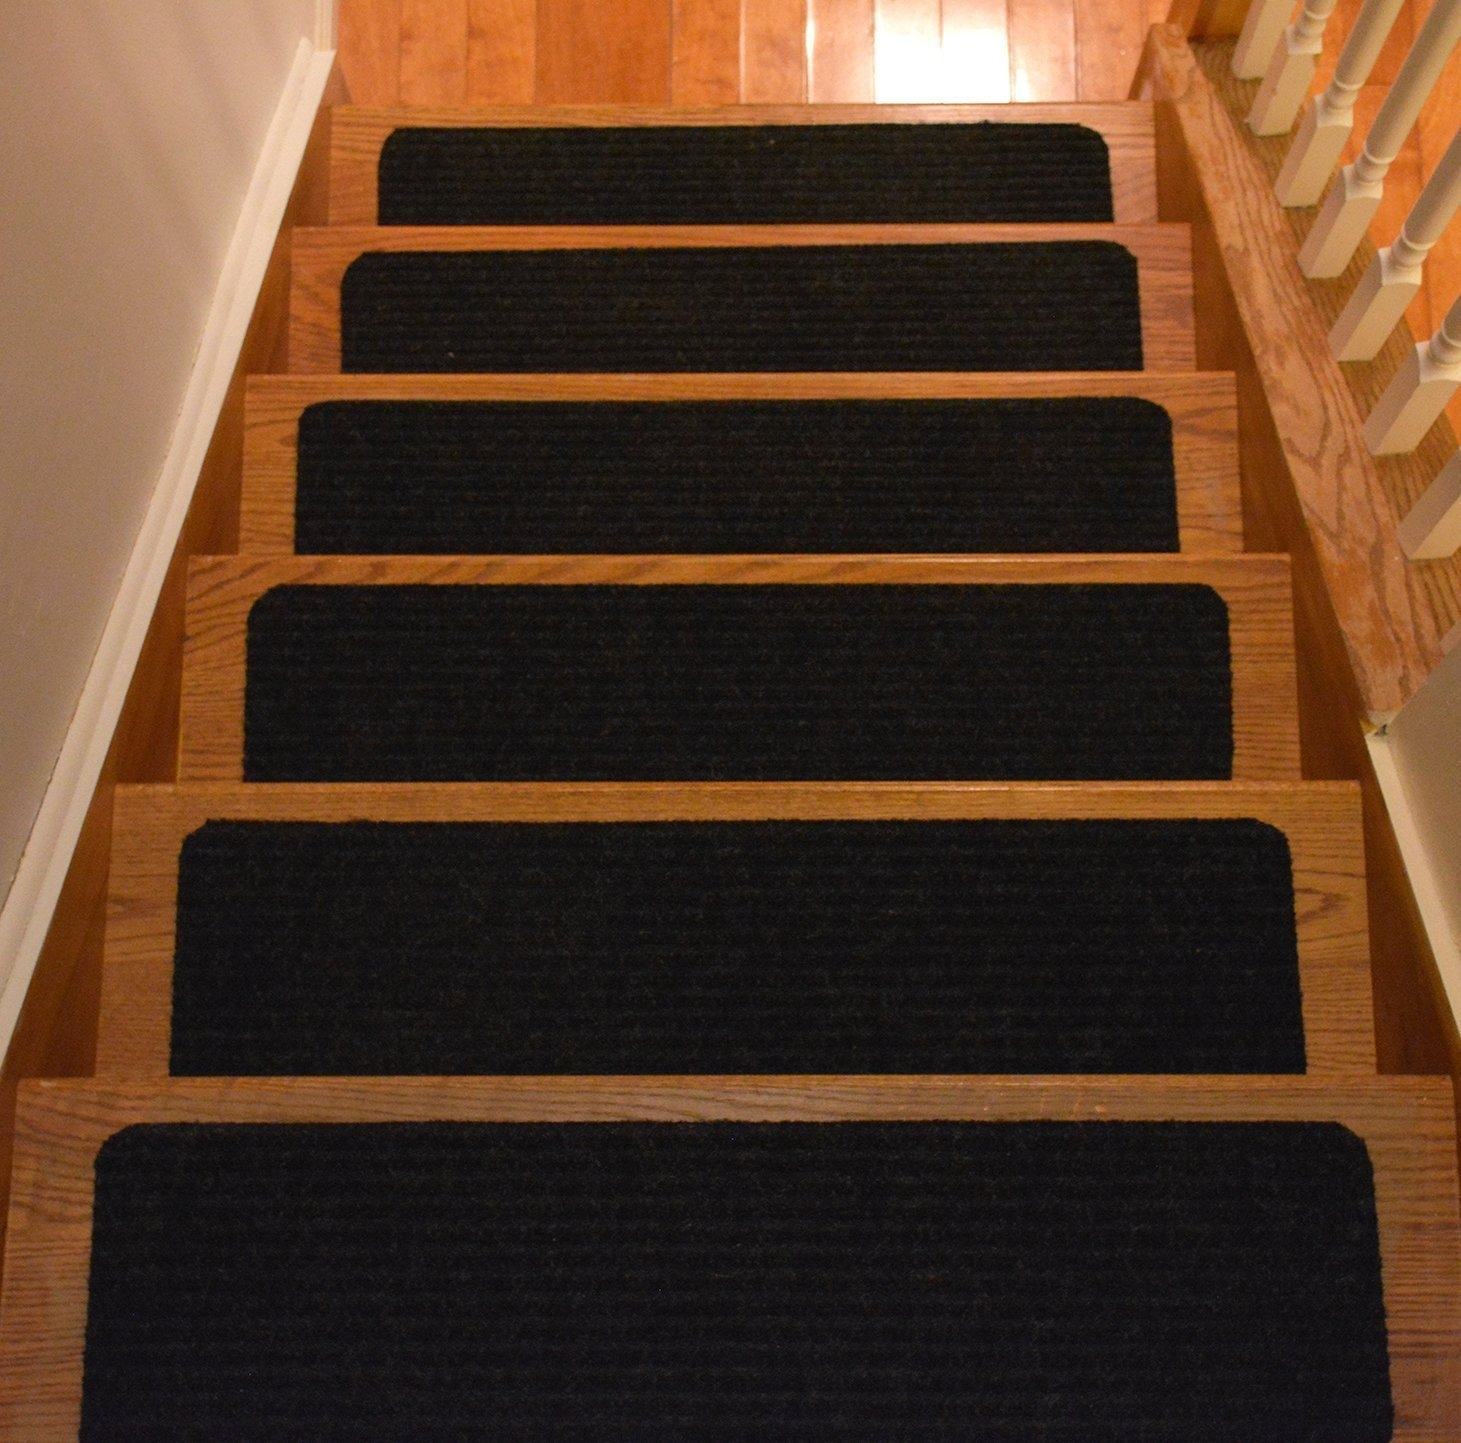 Flooring Pretty Stair Treads Carpet For Stair Decoration Idea Regarding Stair Tread Rugs For Carpet (View 5 of 20)